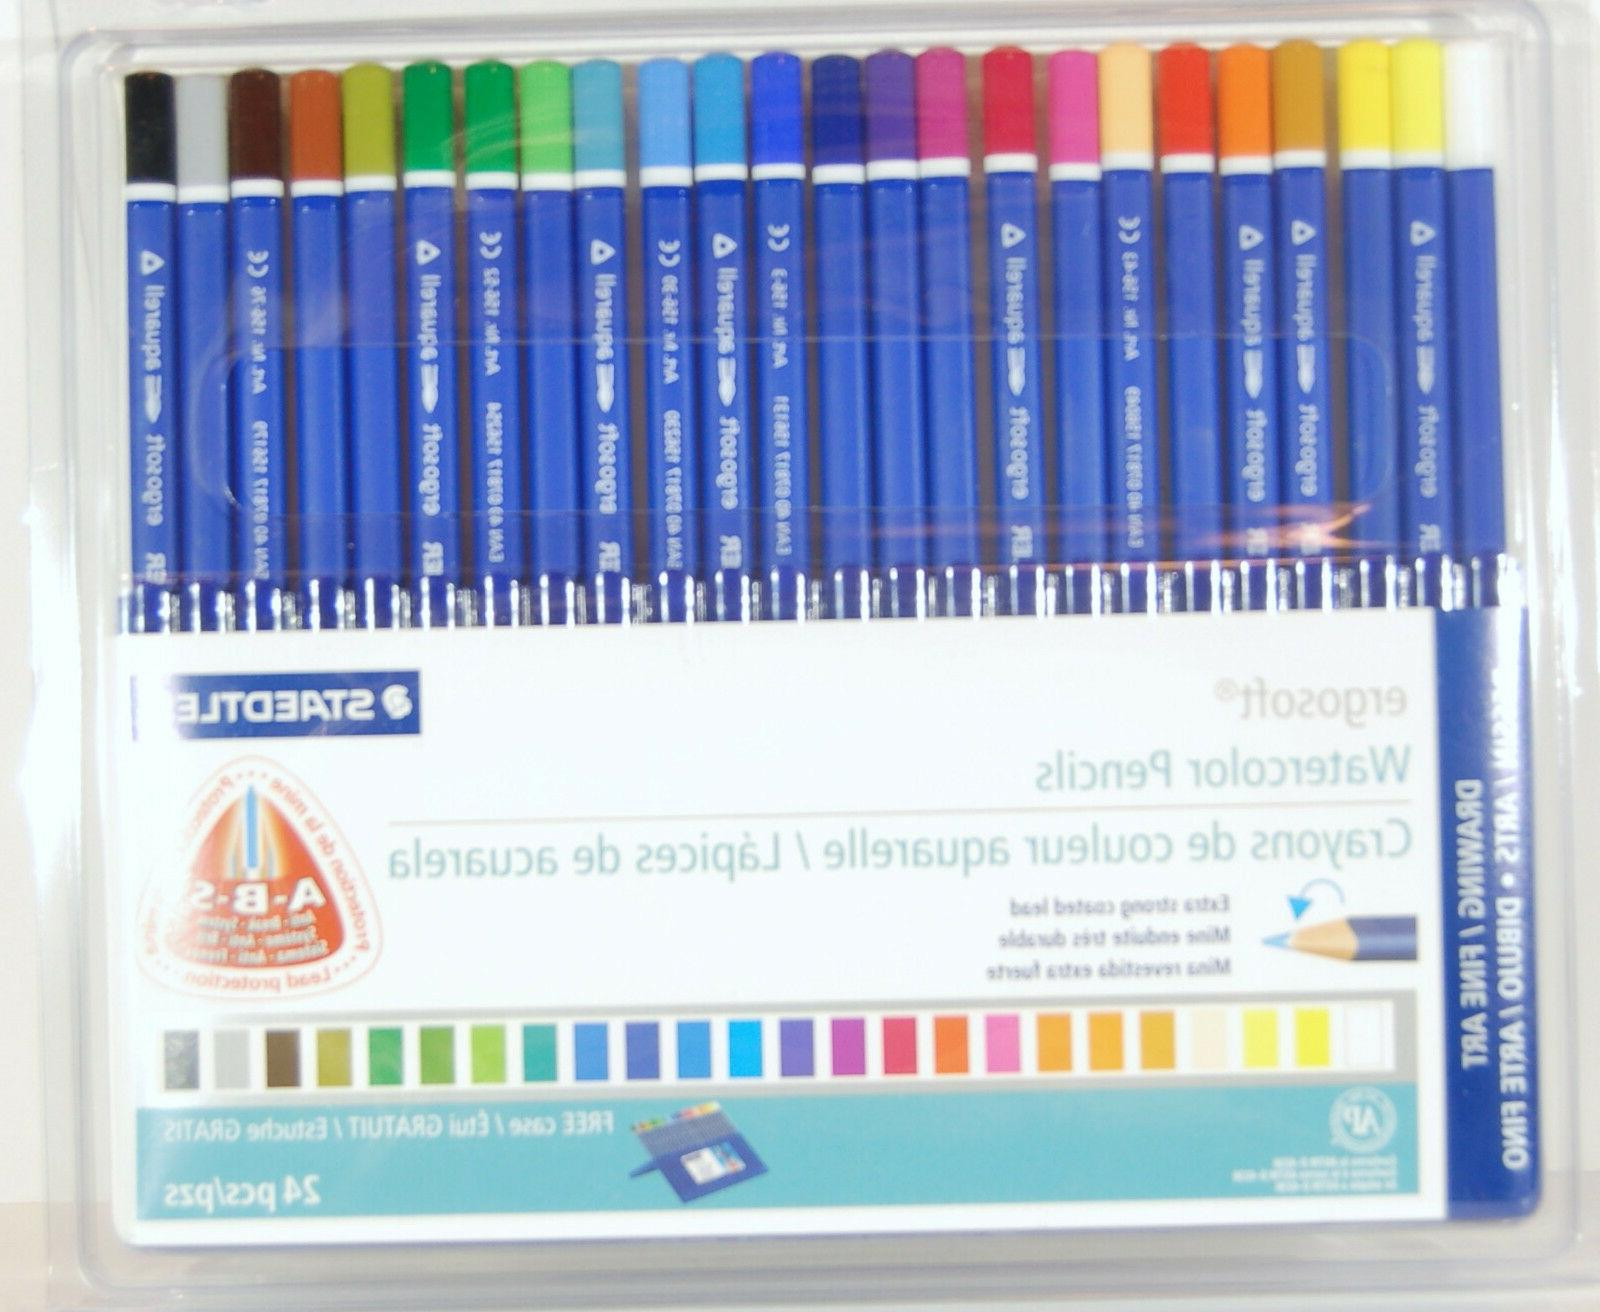 Staedtler Ergosoft Colored Pencil Sets 3.0 mm set of 24